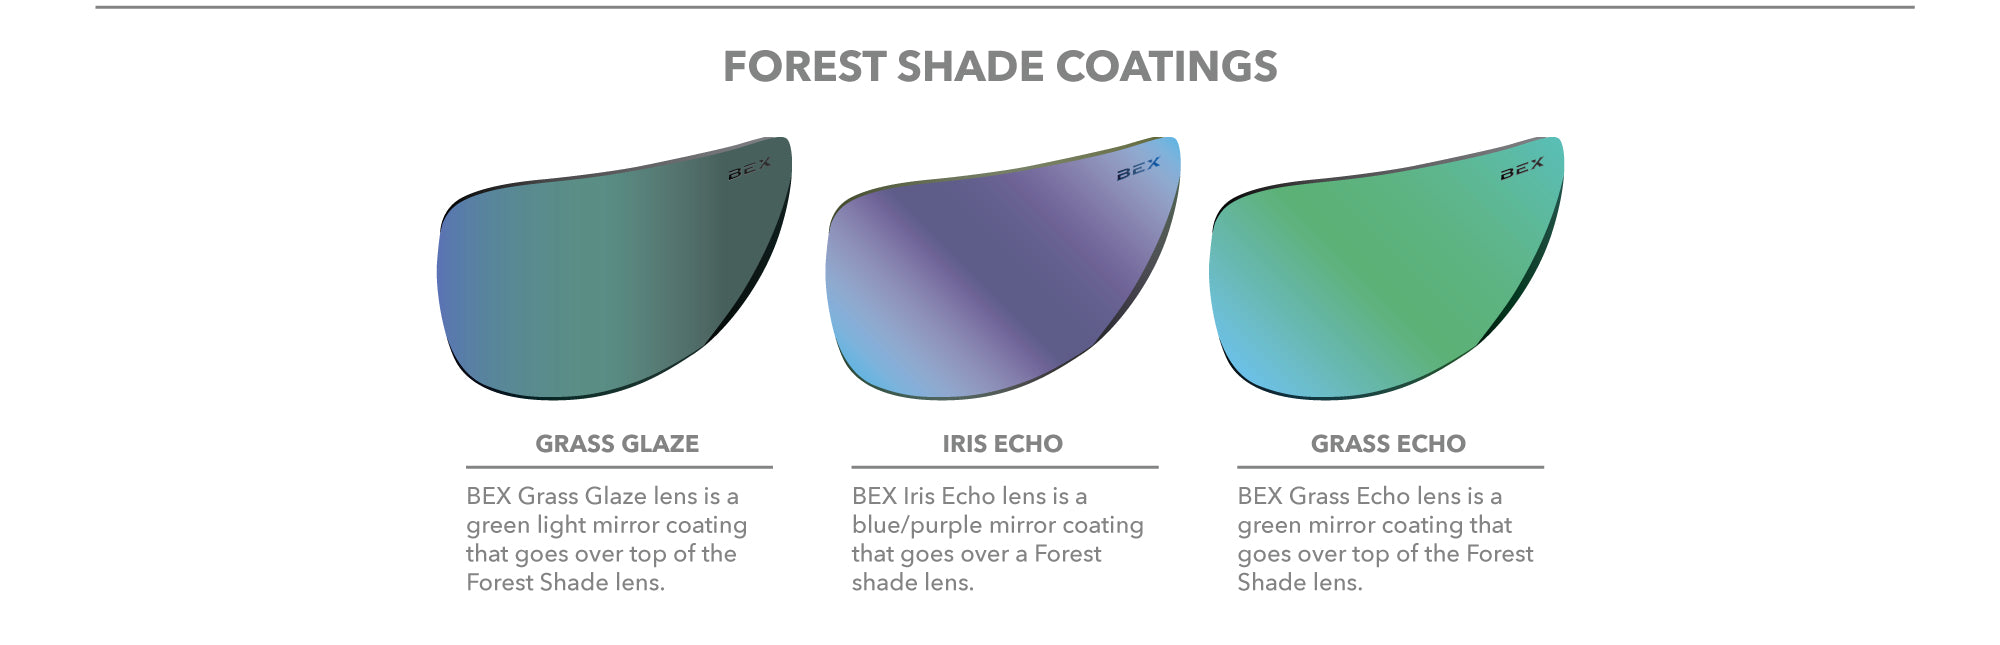 Forest Shade lens coatings